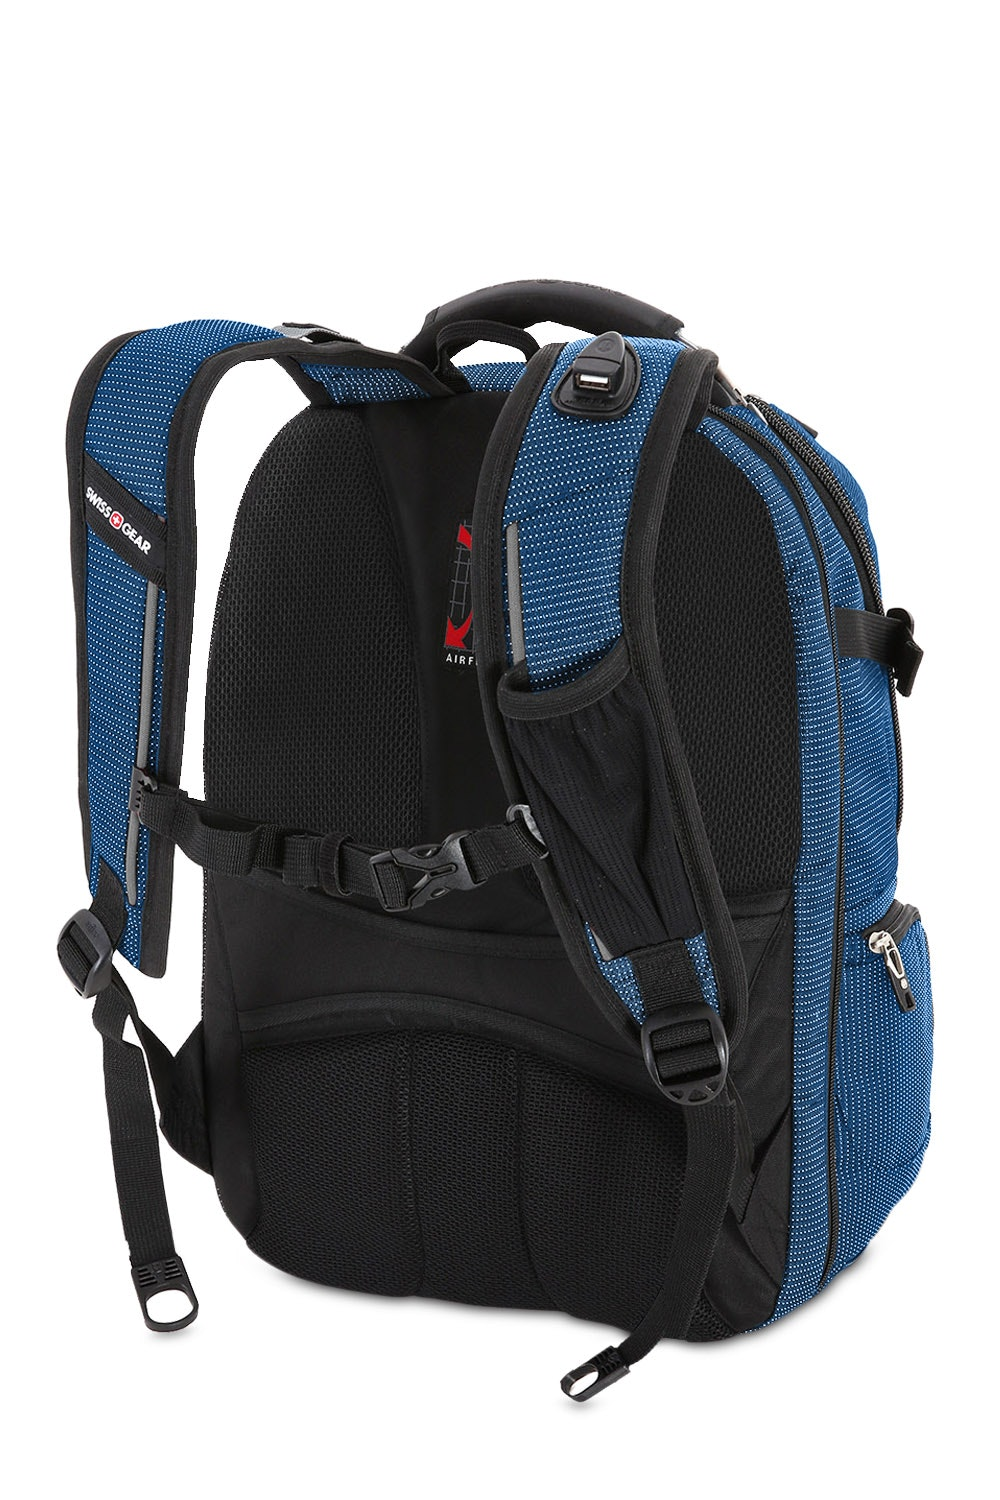 SWISSGEAR 5358 USB Scansmart Backpack Ergonomically Contoured, Padded  Shoulder Straps